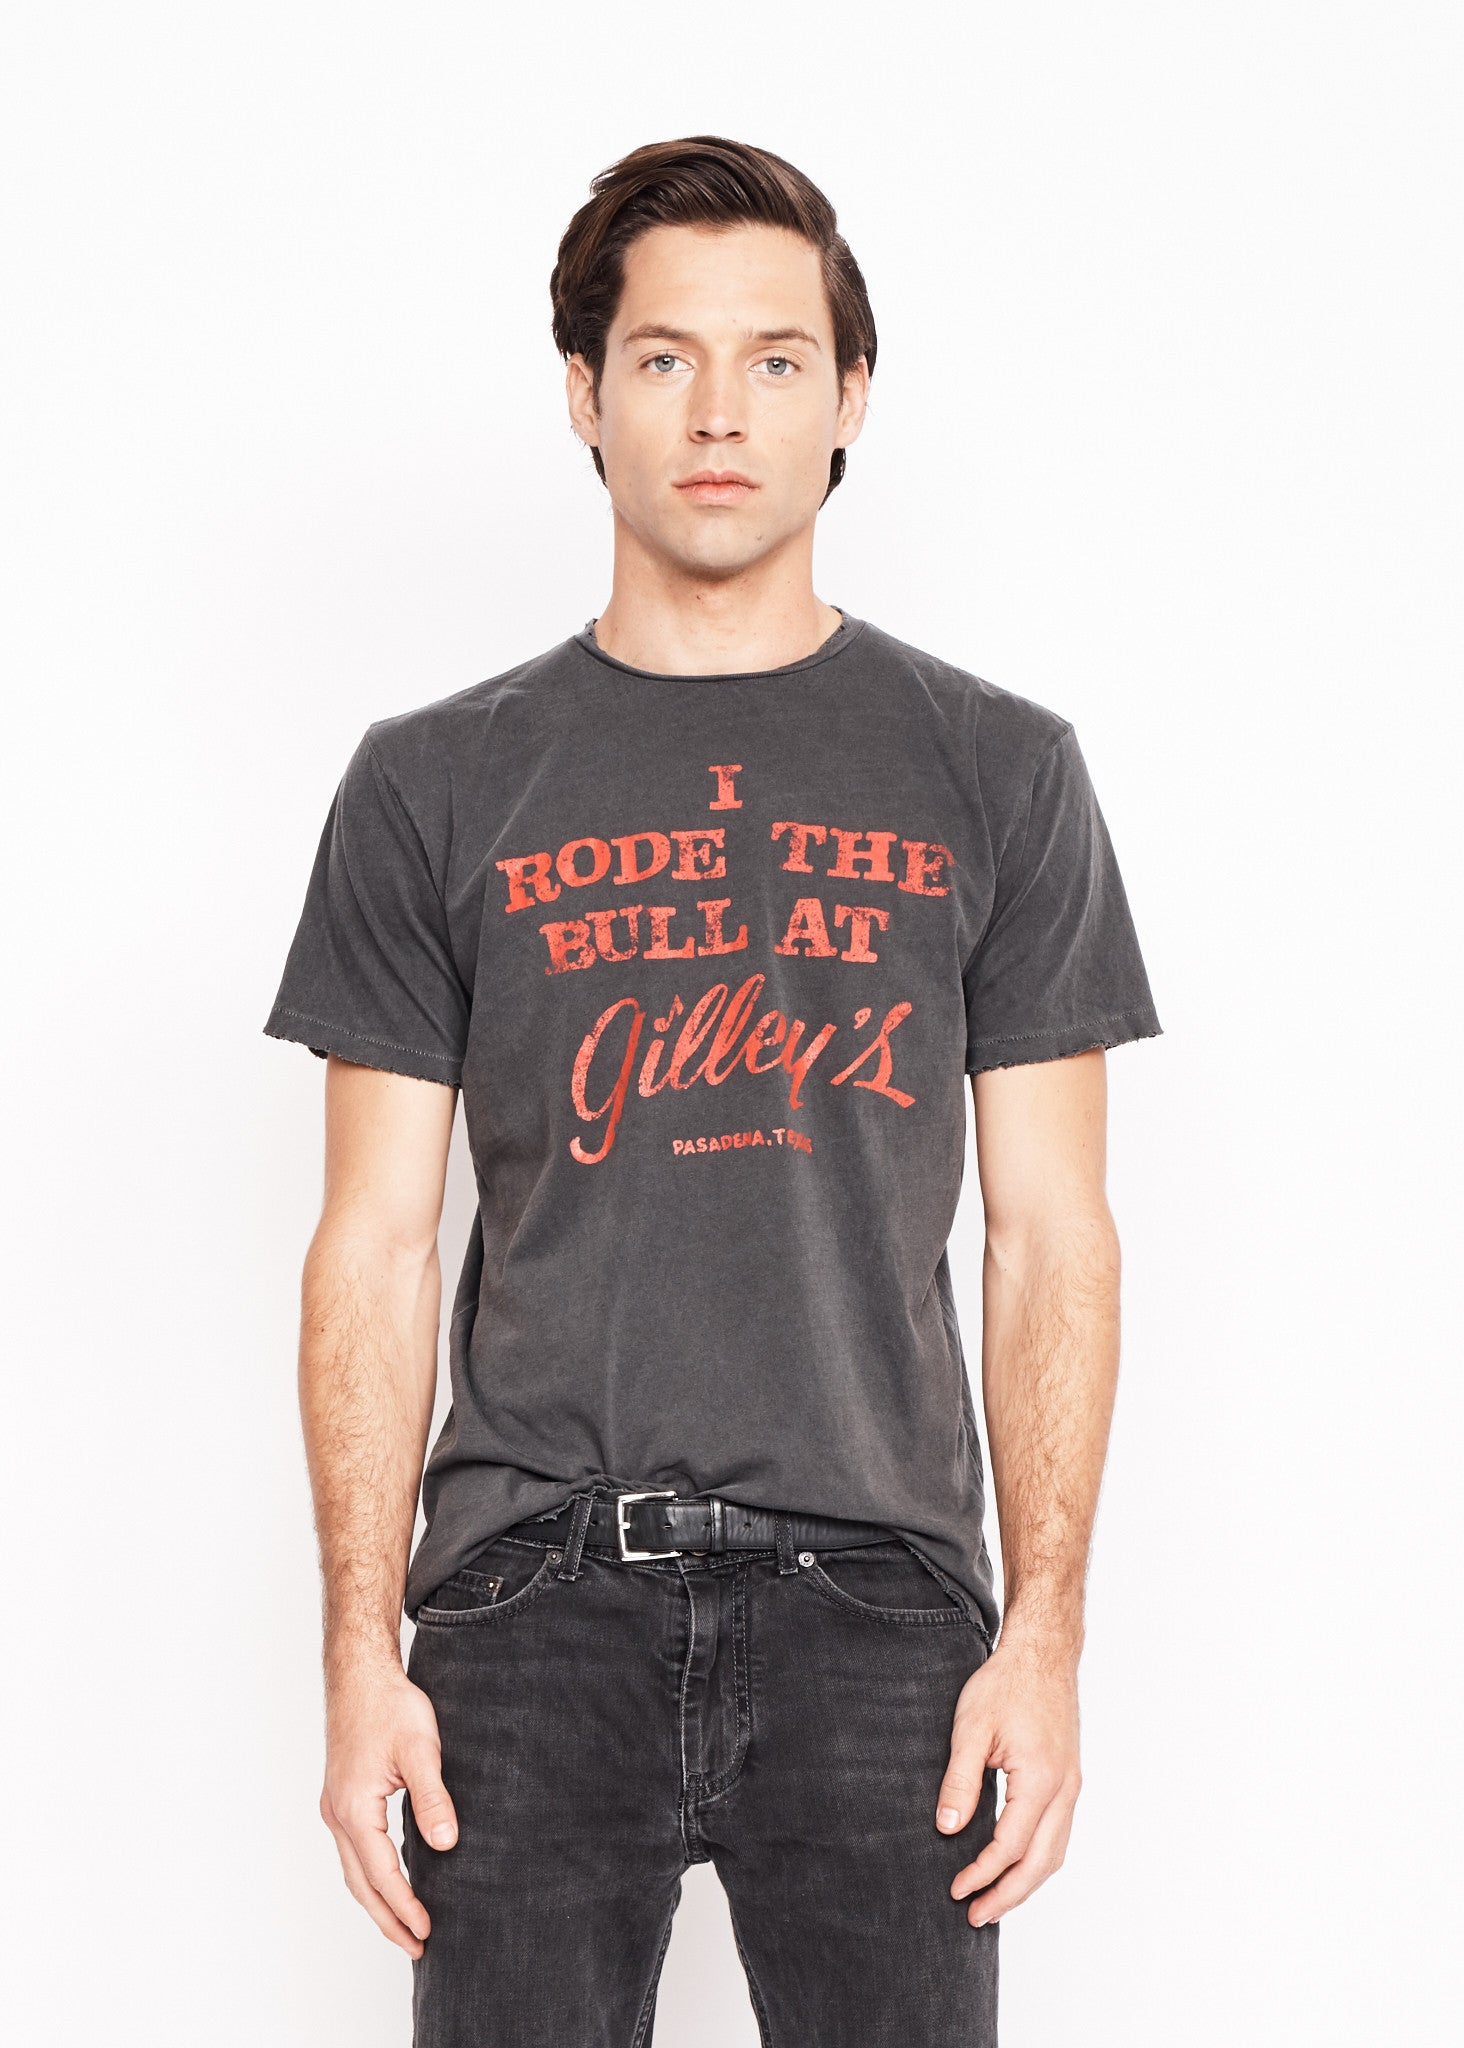 I Rode the Bull at Gilley's Men's Crew - Vintage Black - Men's Tee Shirt - Midnight Rider